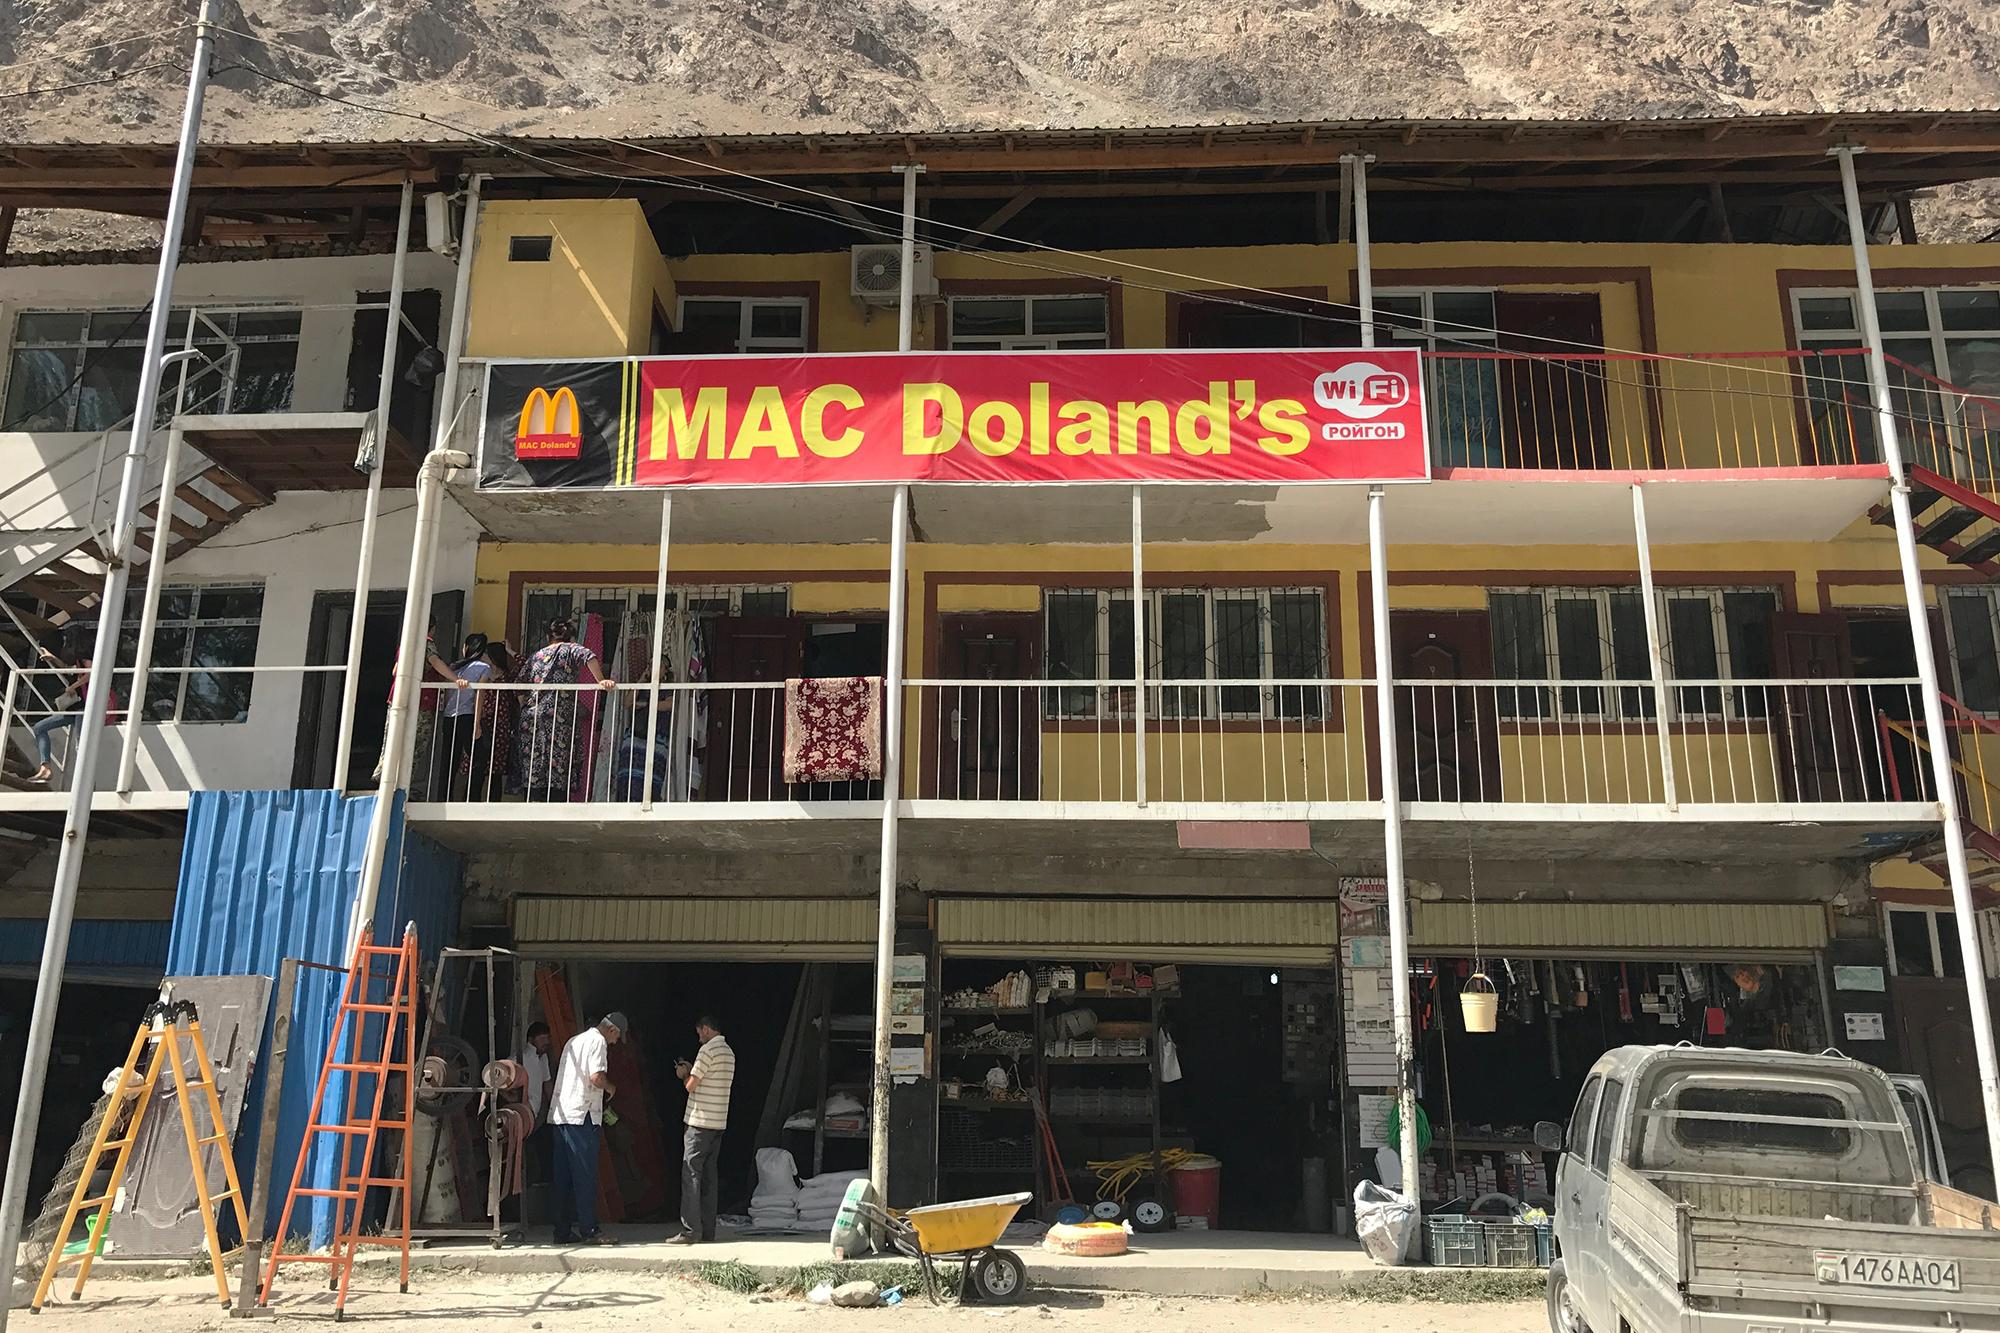 The Golden Arches in Khorog, complete with Roland Mac Doland. But they only serve chicken.